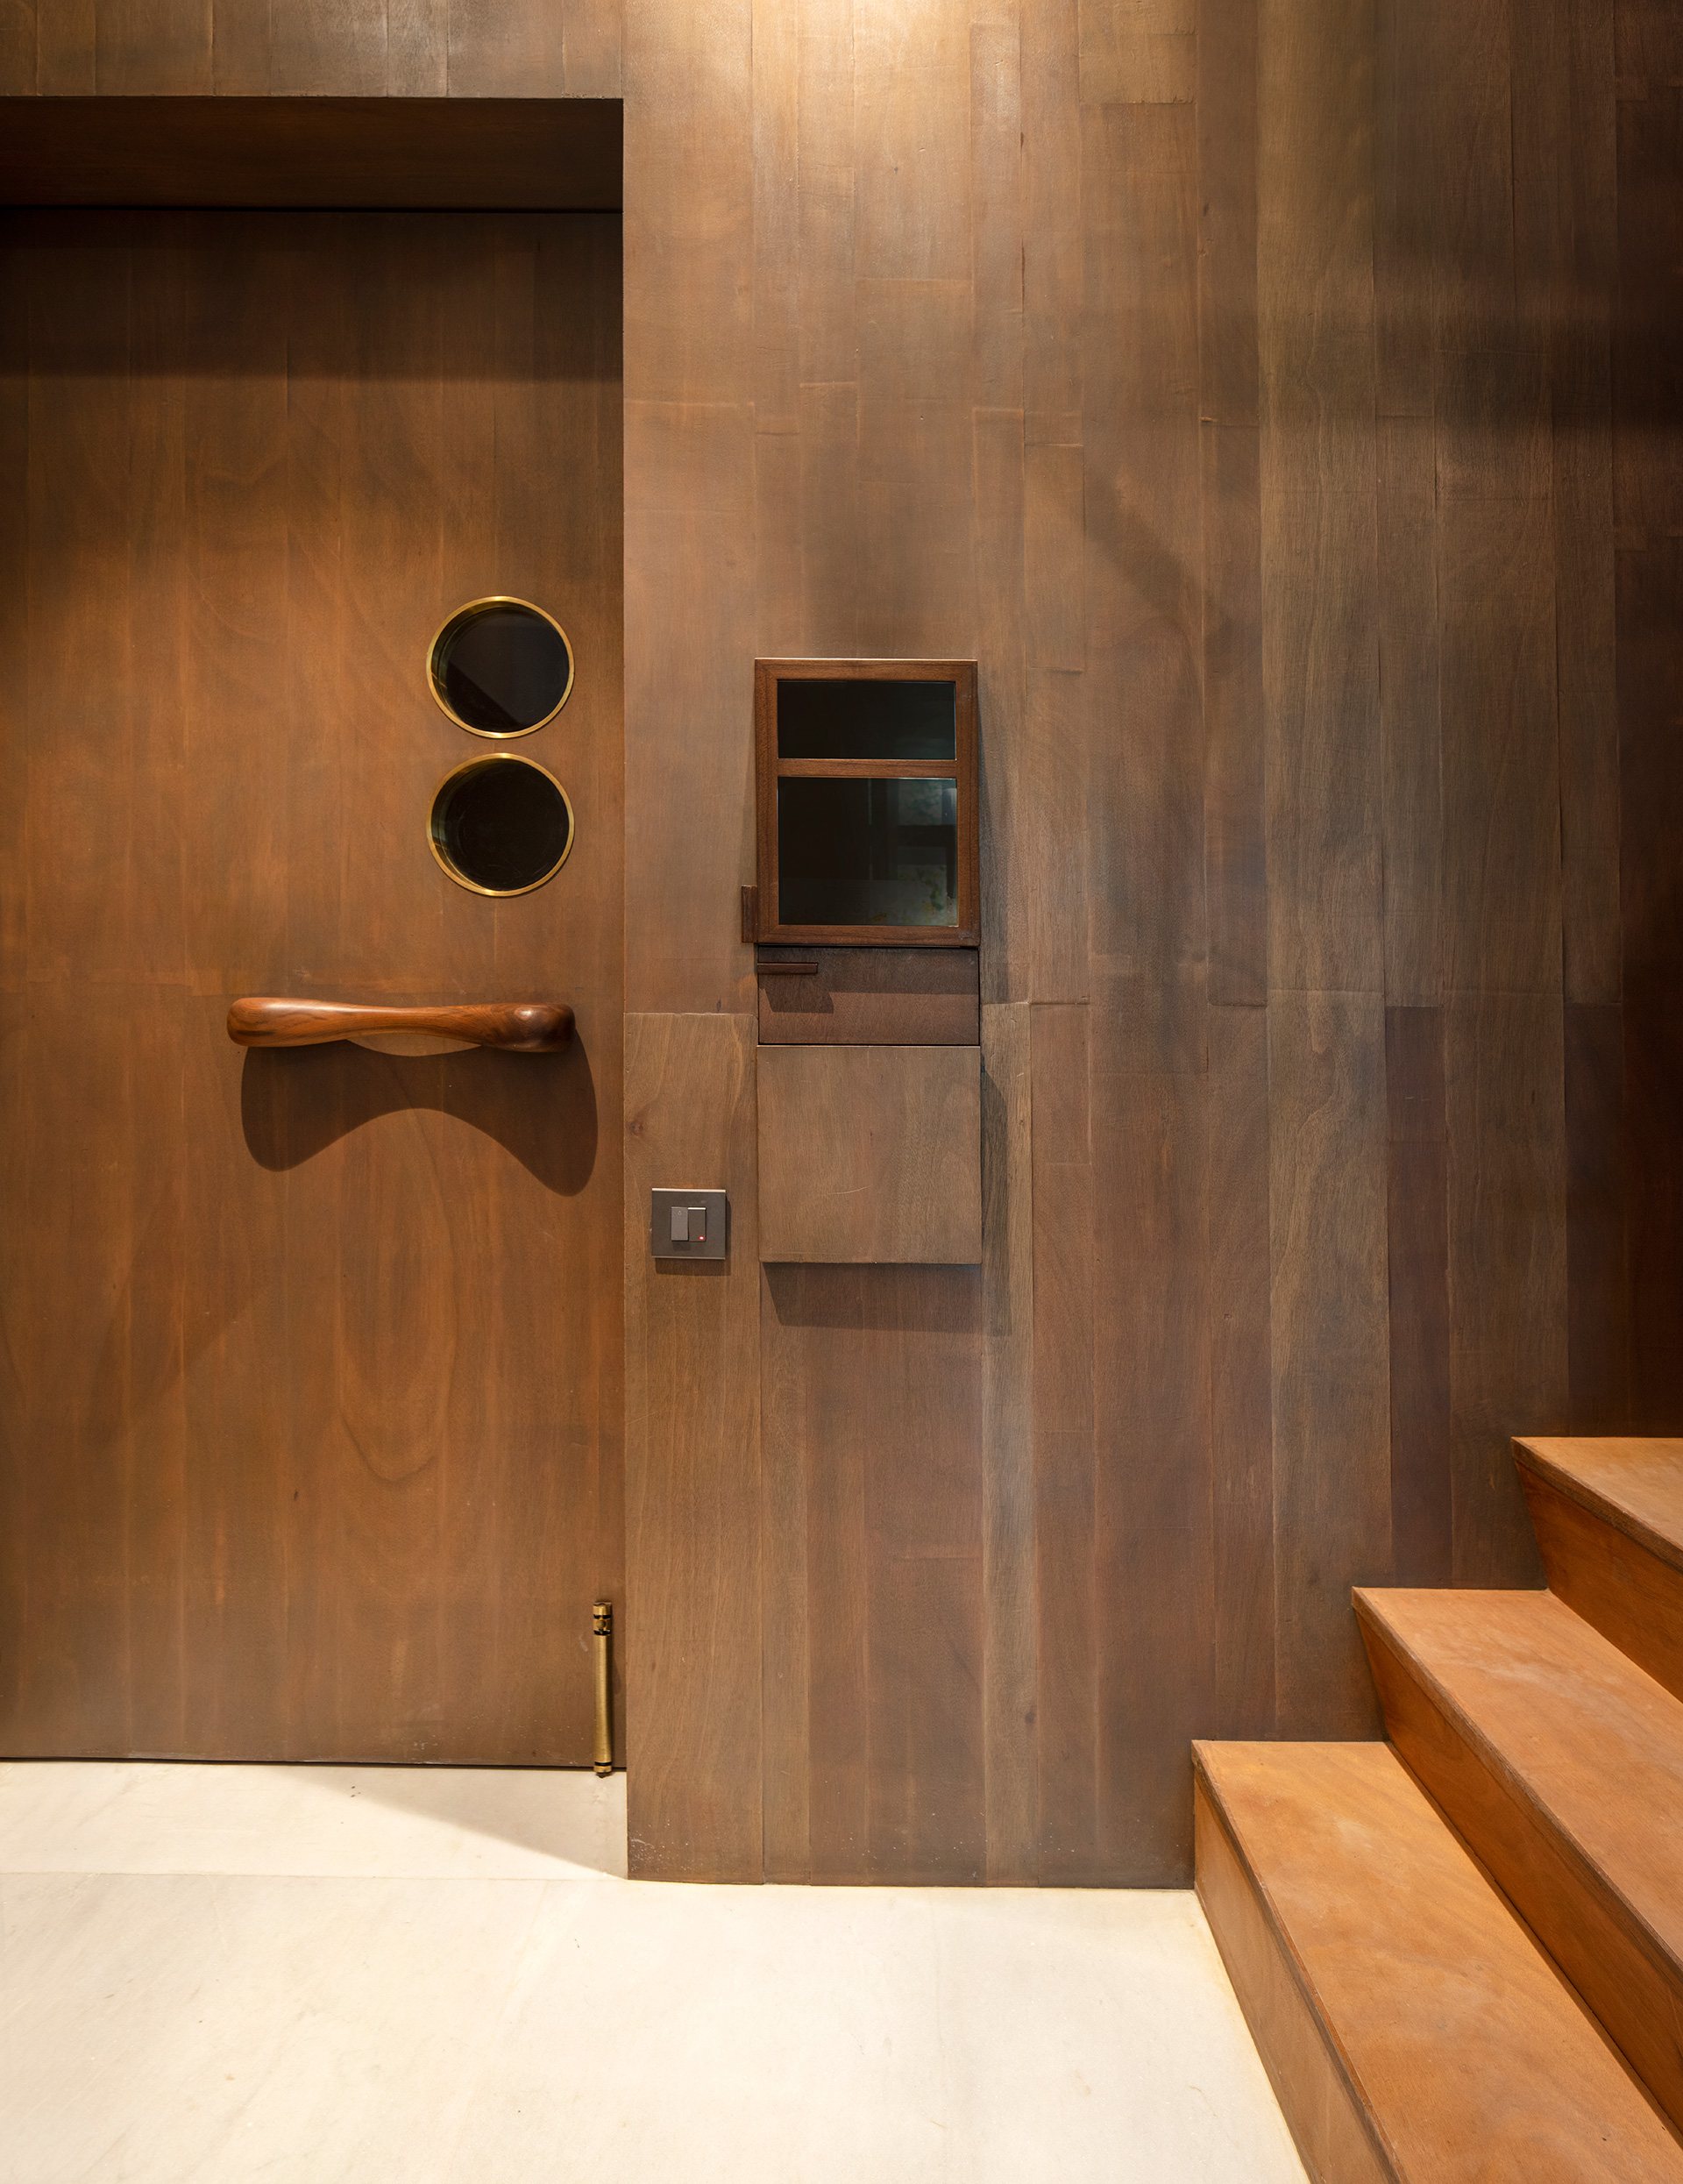 Entrance to the office, with the unique wooden door handle inspired from Isamu Noguchi's artwork | Samira Rathod Design Atelier | Mumbai | STIRworld